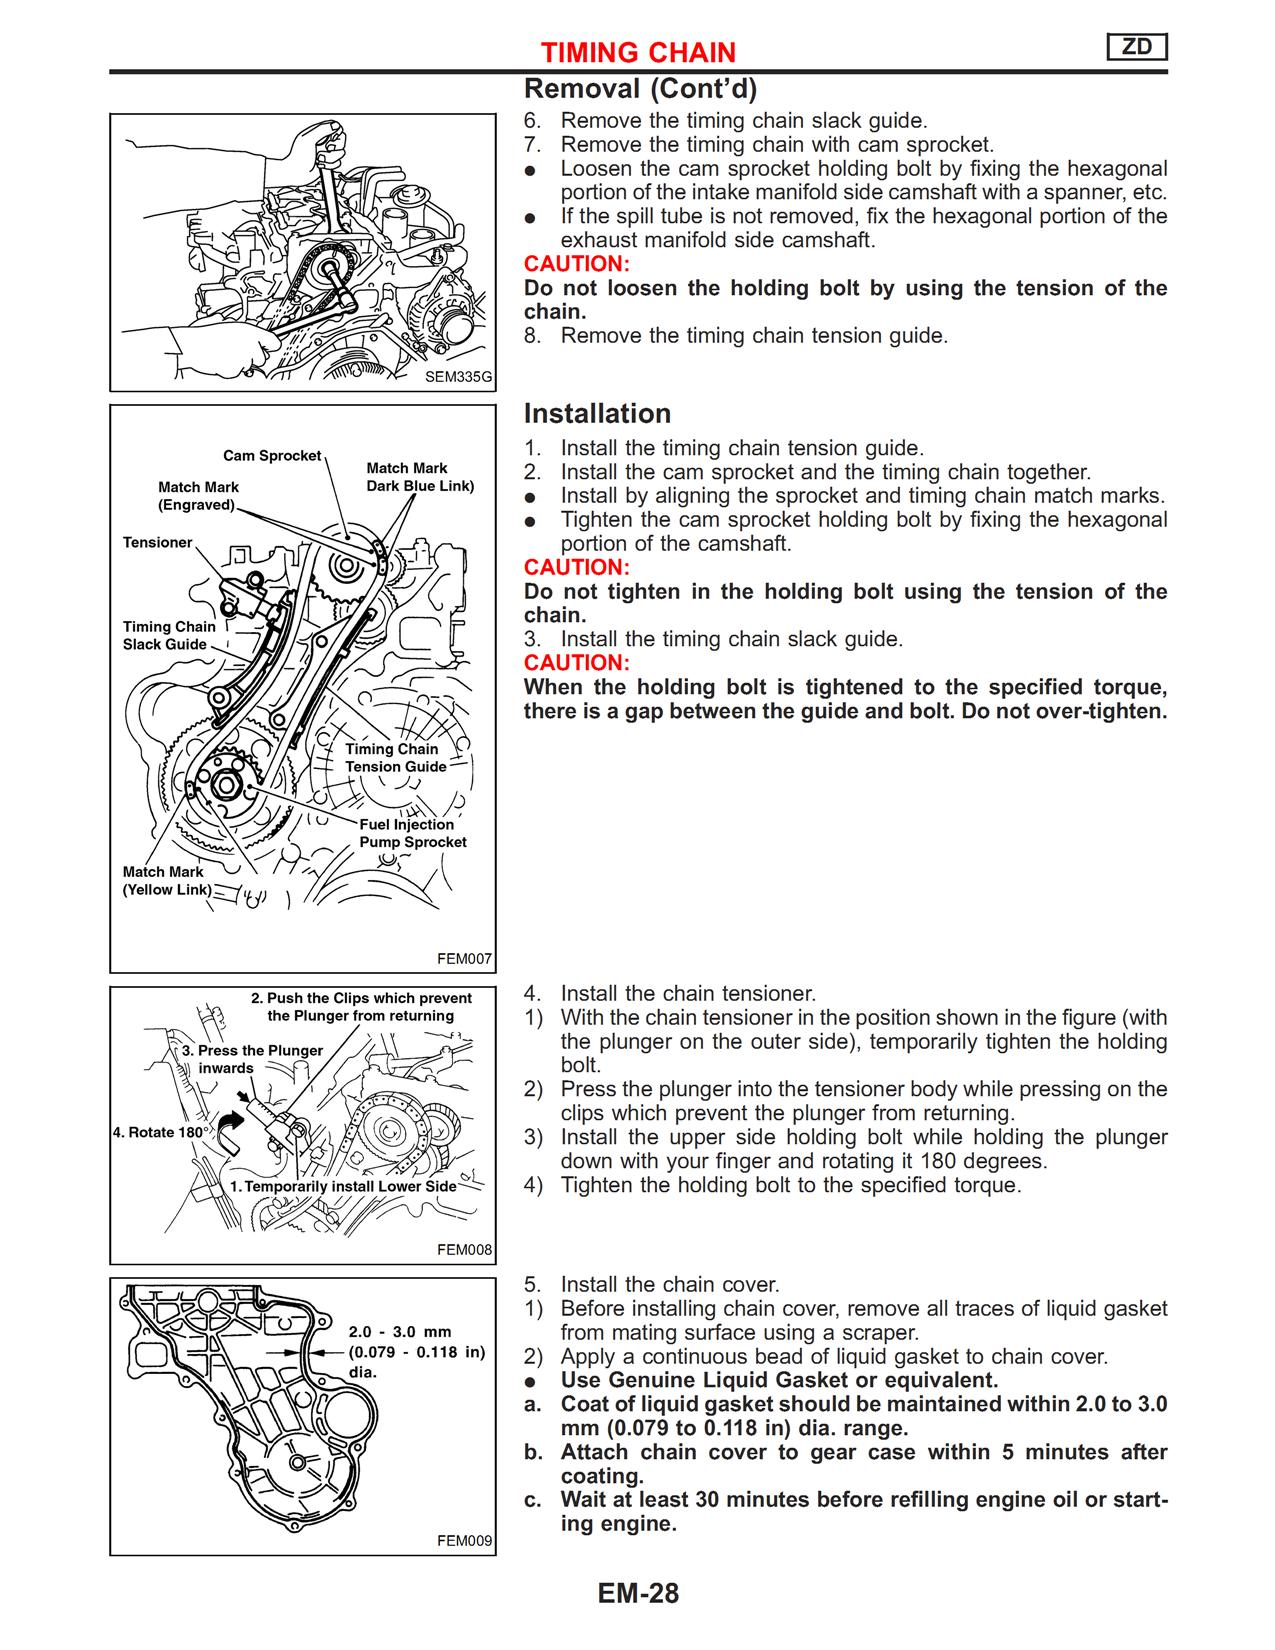 mazda wl engine timing marks diagrams how do you set the value timing on a nissan zd30 motor #14